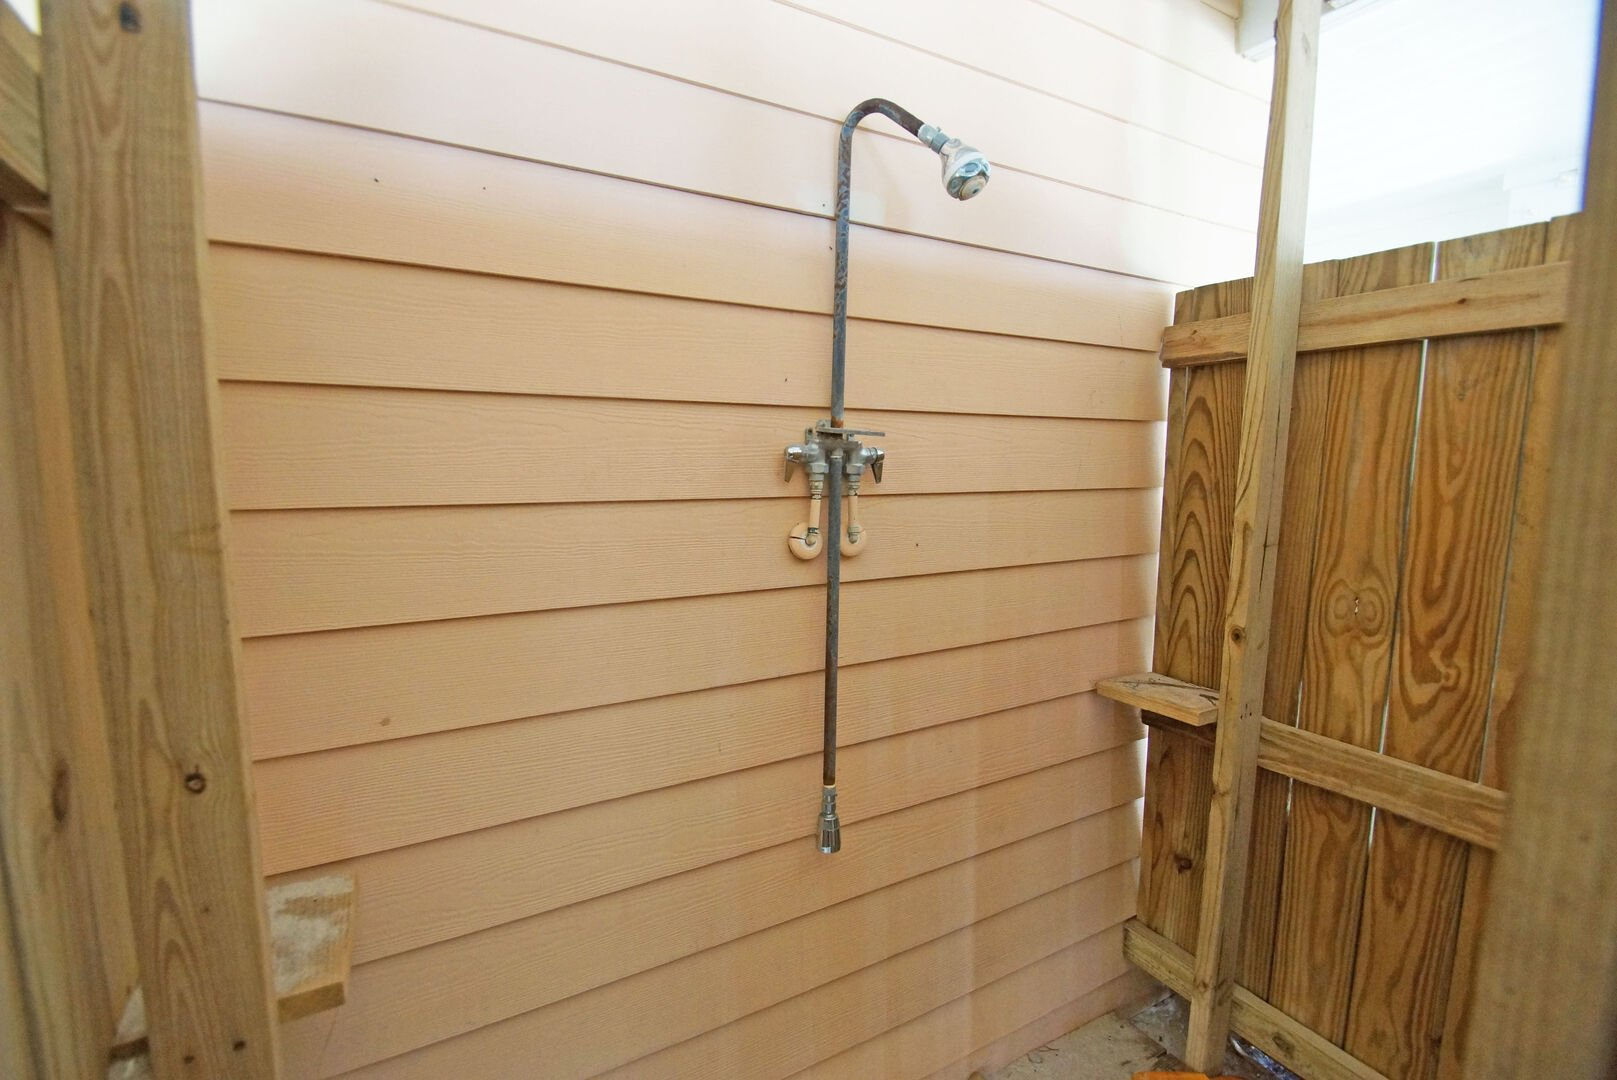 Guests Can Rinse Off in an Enclosed Outdoor Shower.